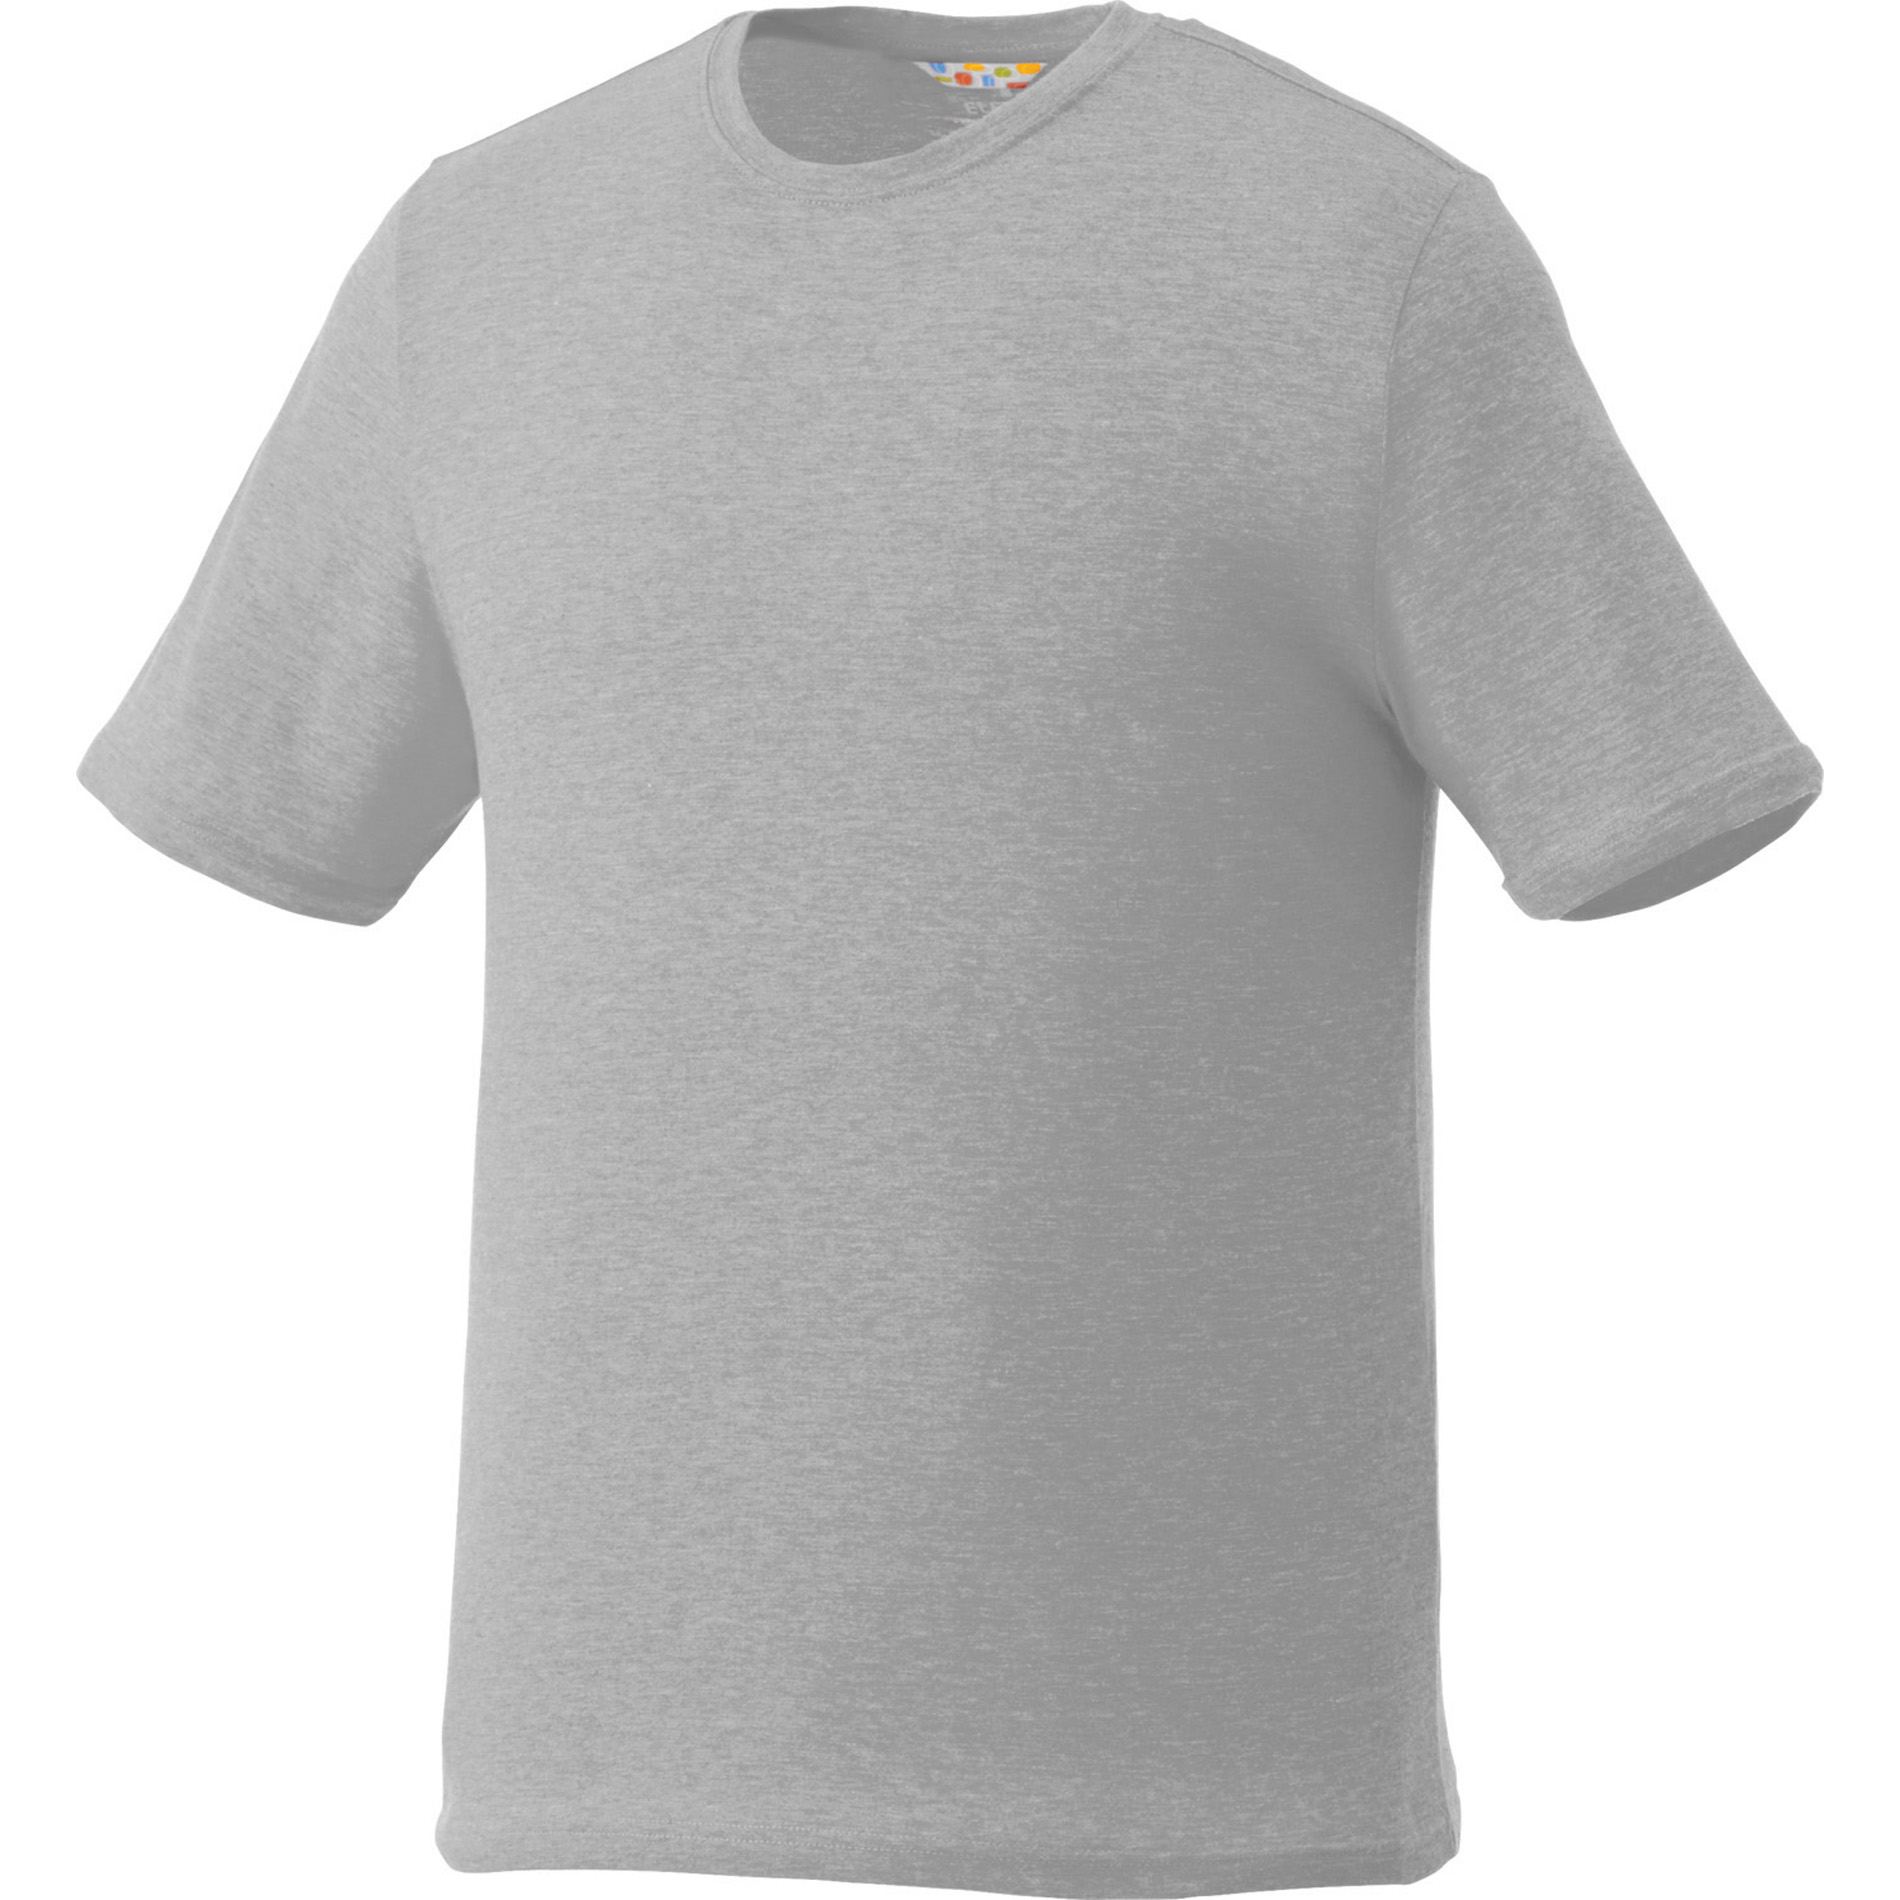 Promotional Products | T-Shirts & Knits